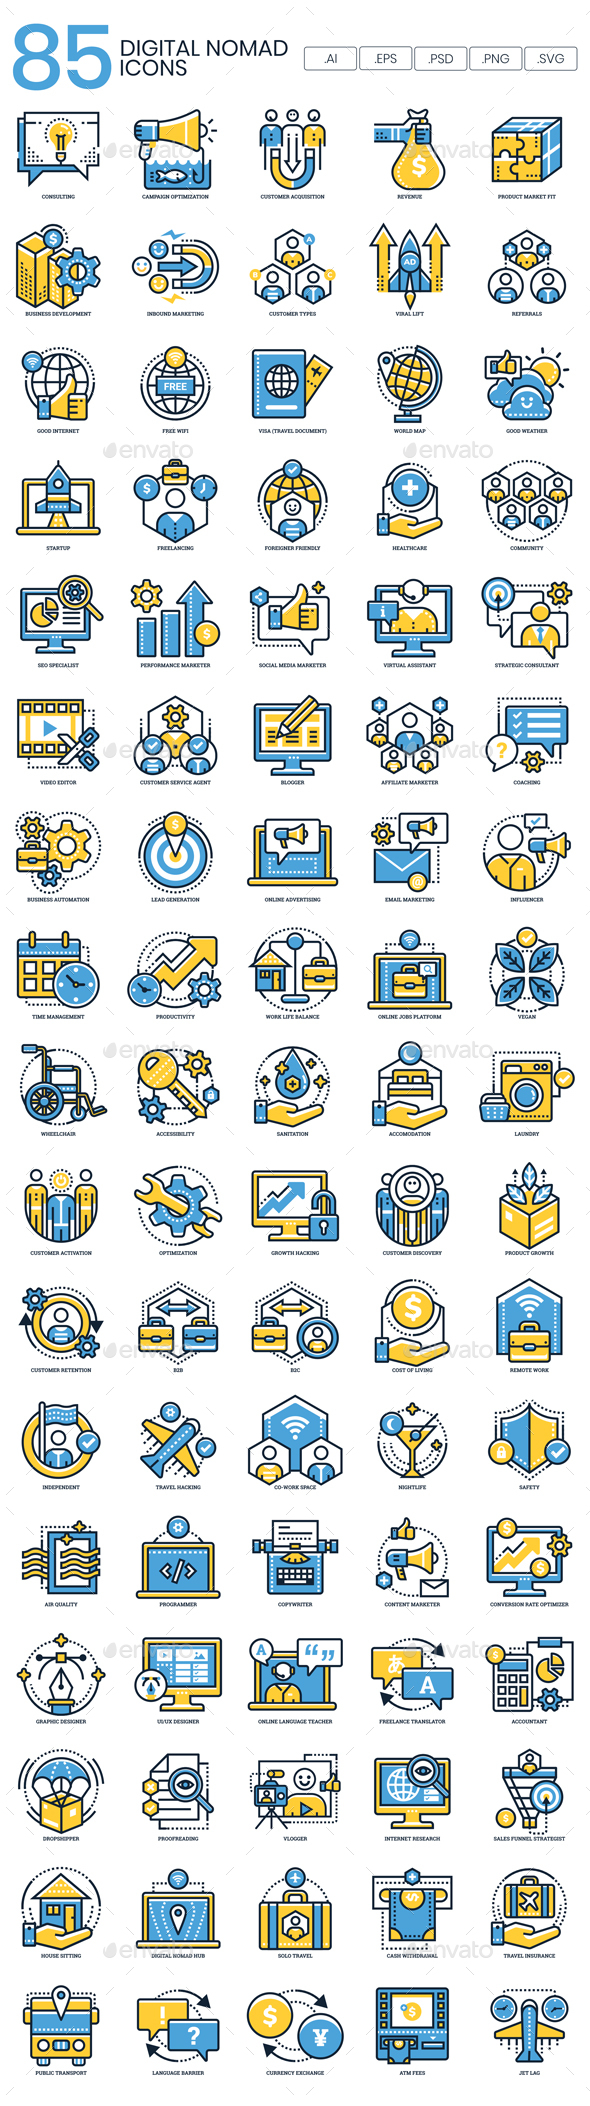 Digital Nomad Icons - Technology Icons